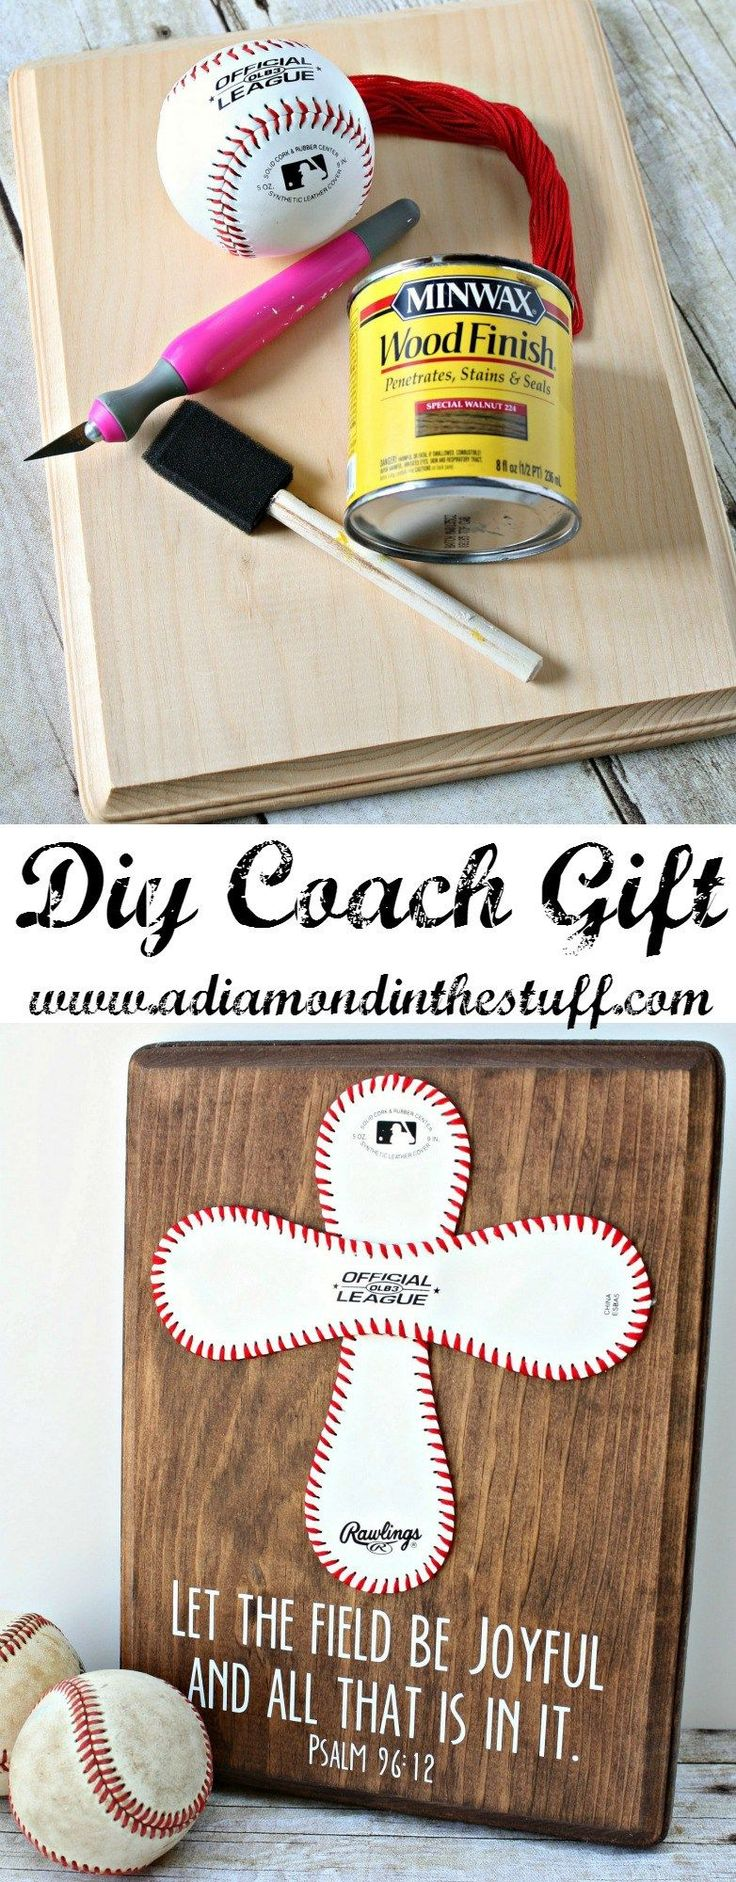 Diy coach gift a diamond in the stuff